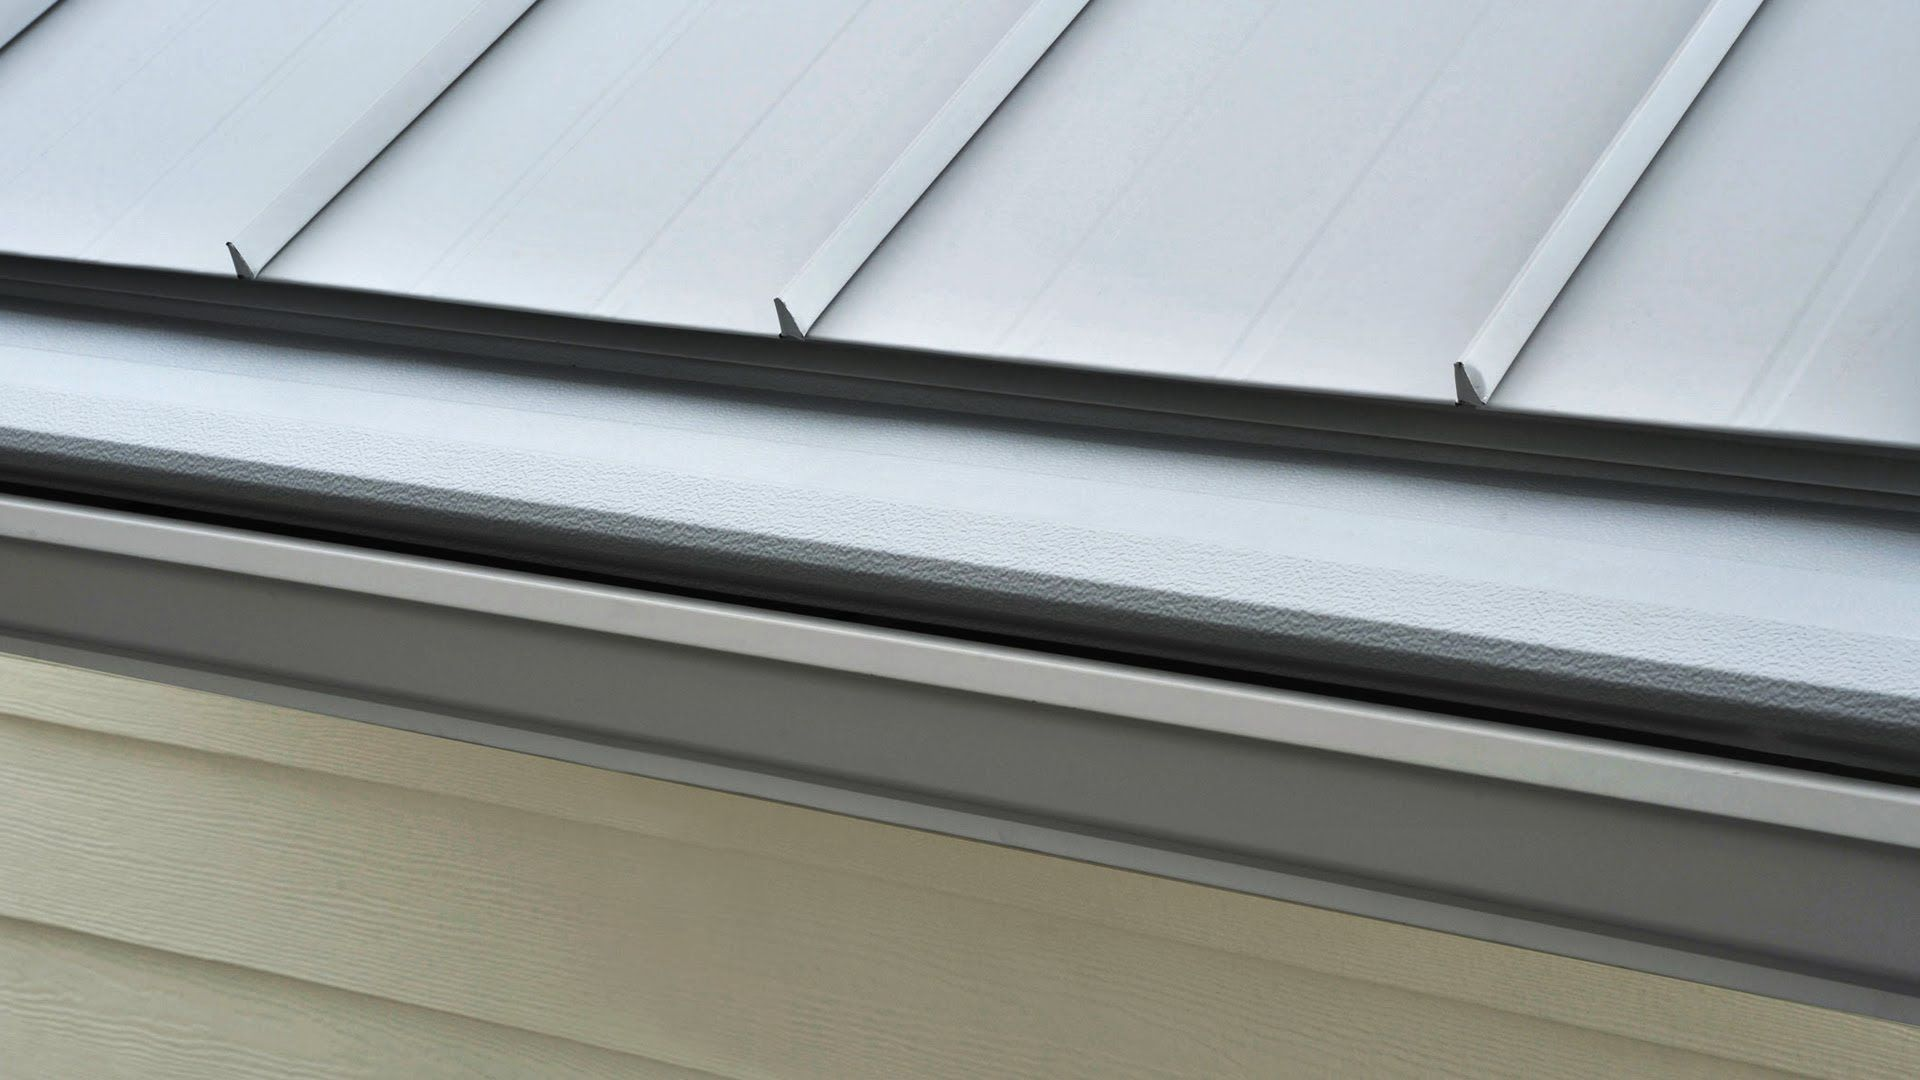 Tired Of Cleaning Your Gutters It S Time To Get Off The Ladder And Get Gutter Helmet With Our Gutter P Gutter Helmet Gutter Protection How To Install Gutters